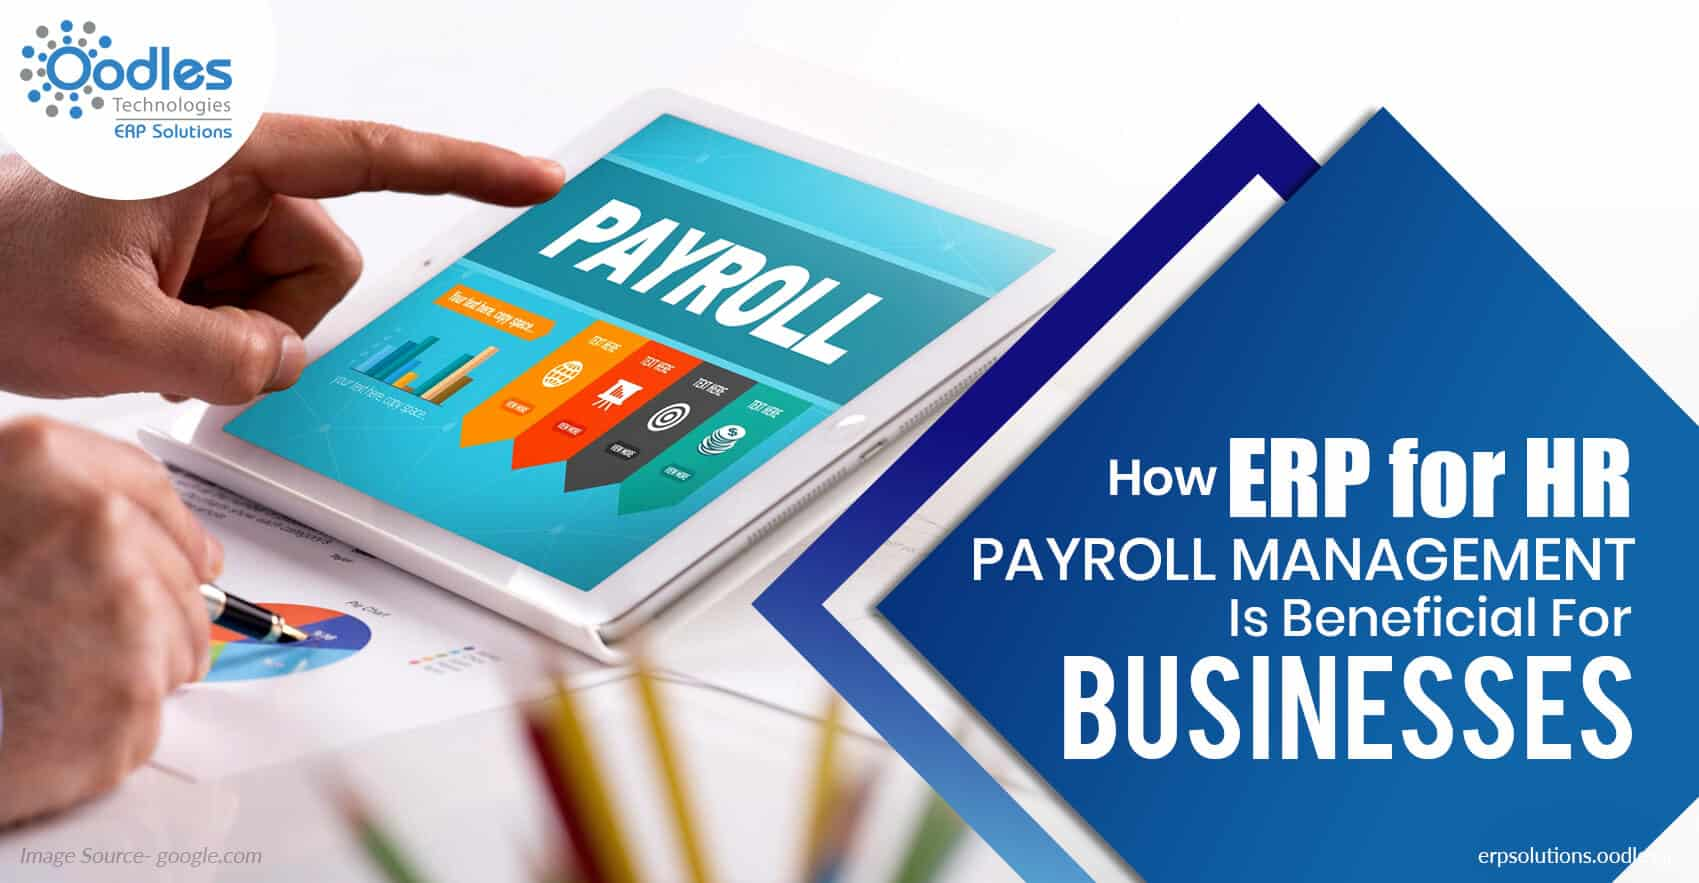 ERP for HR and Payroll Management